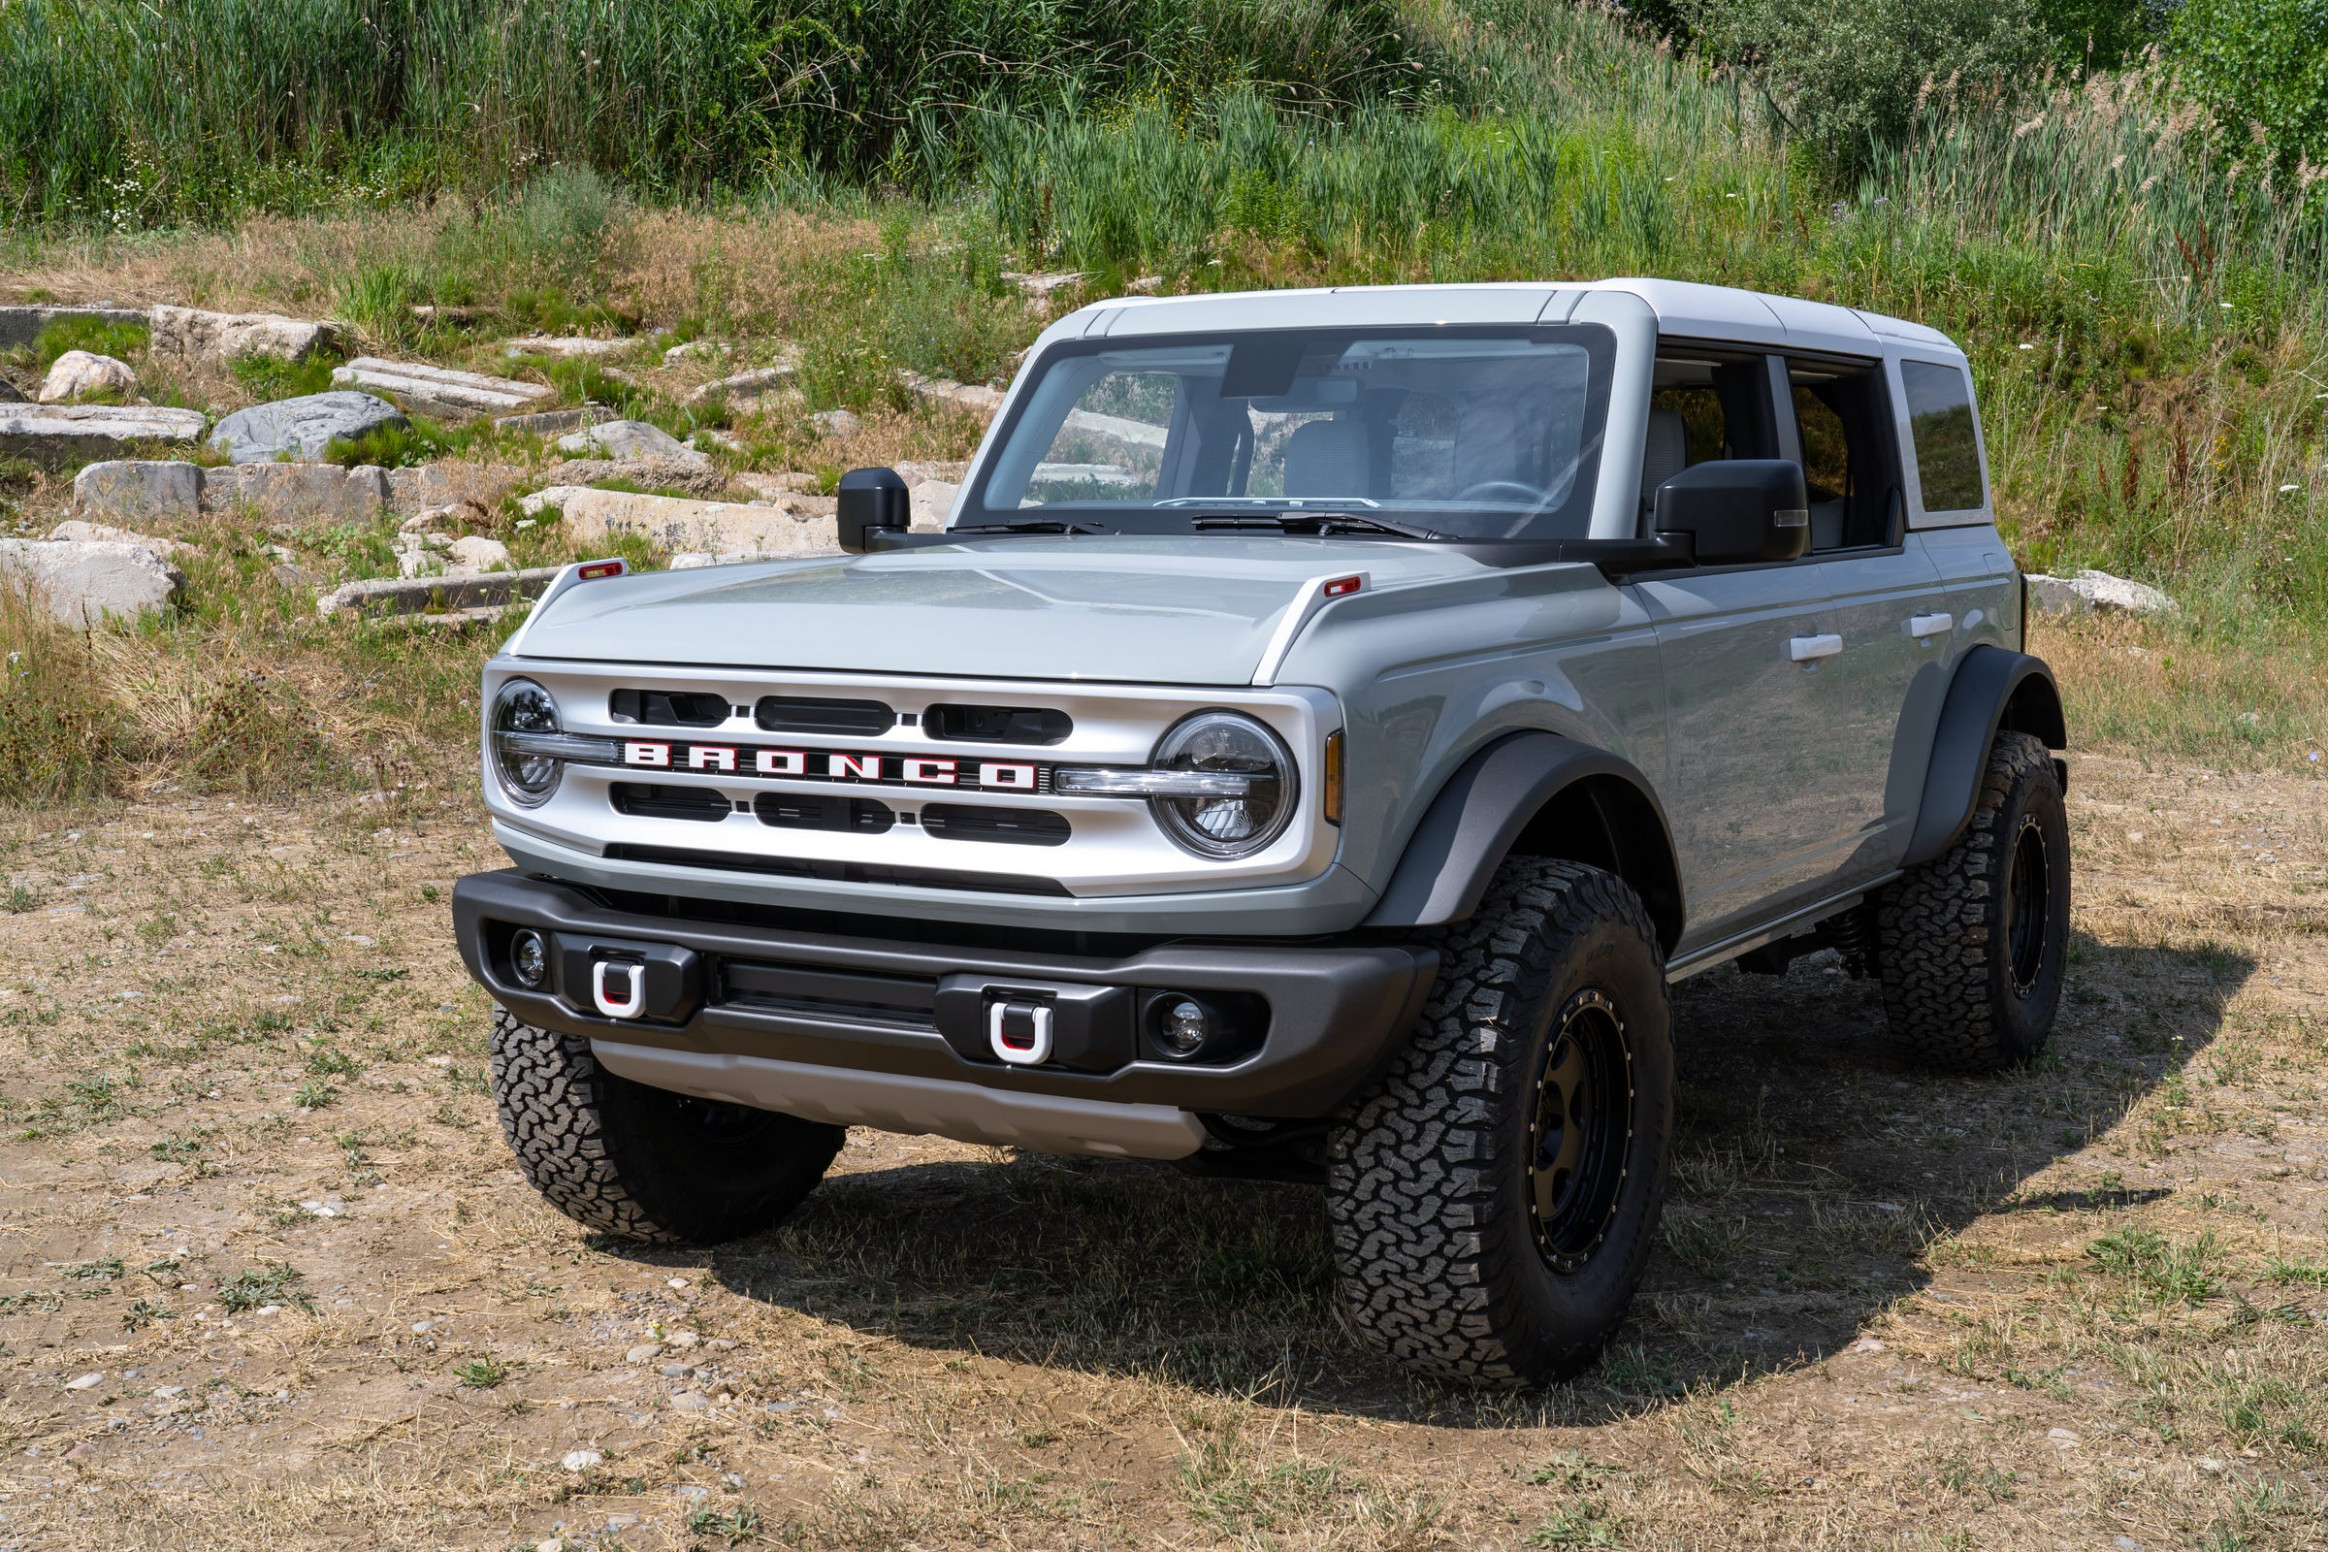 Concept Build Your Own 2022 Ford Bronco